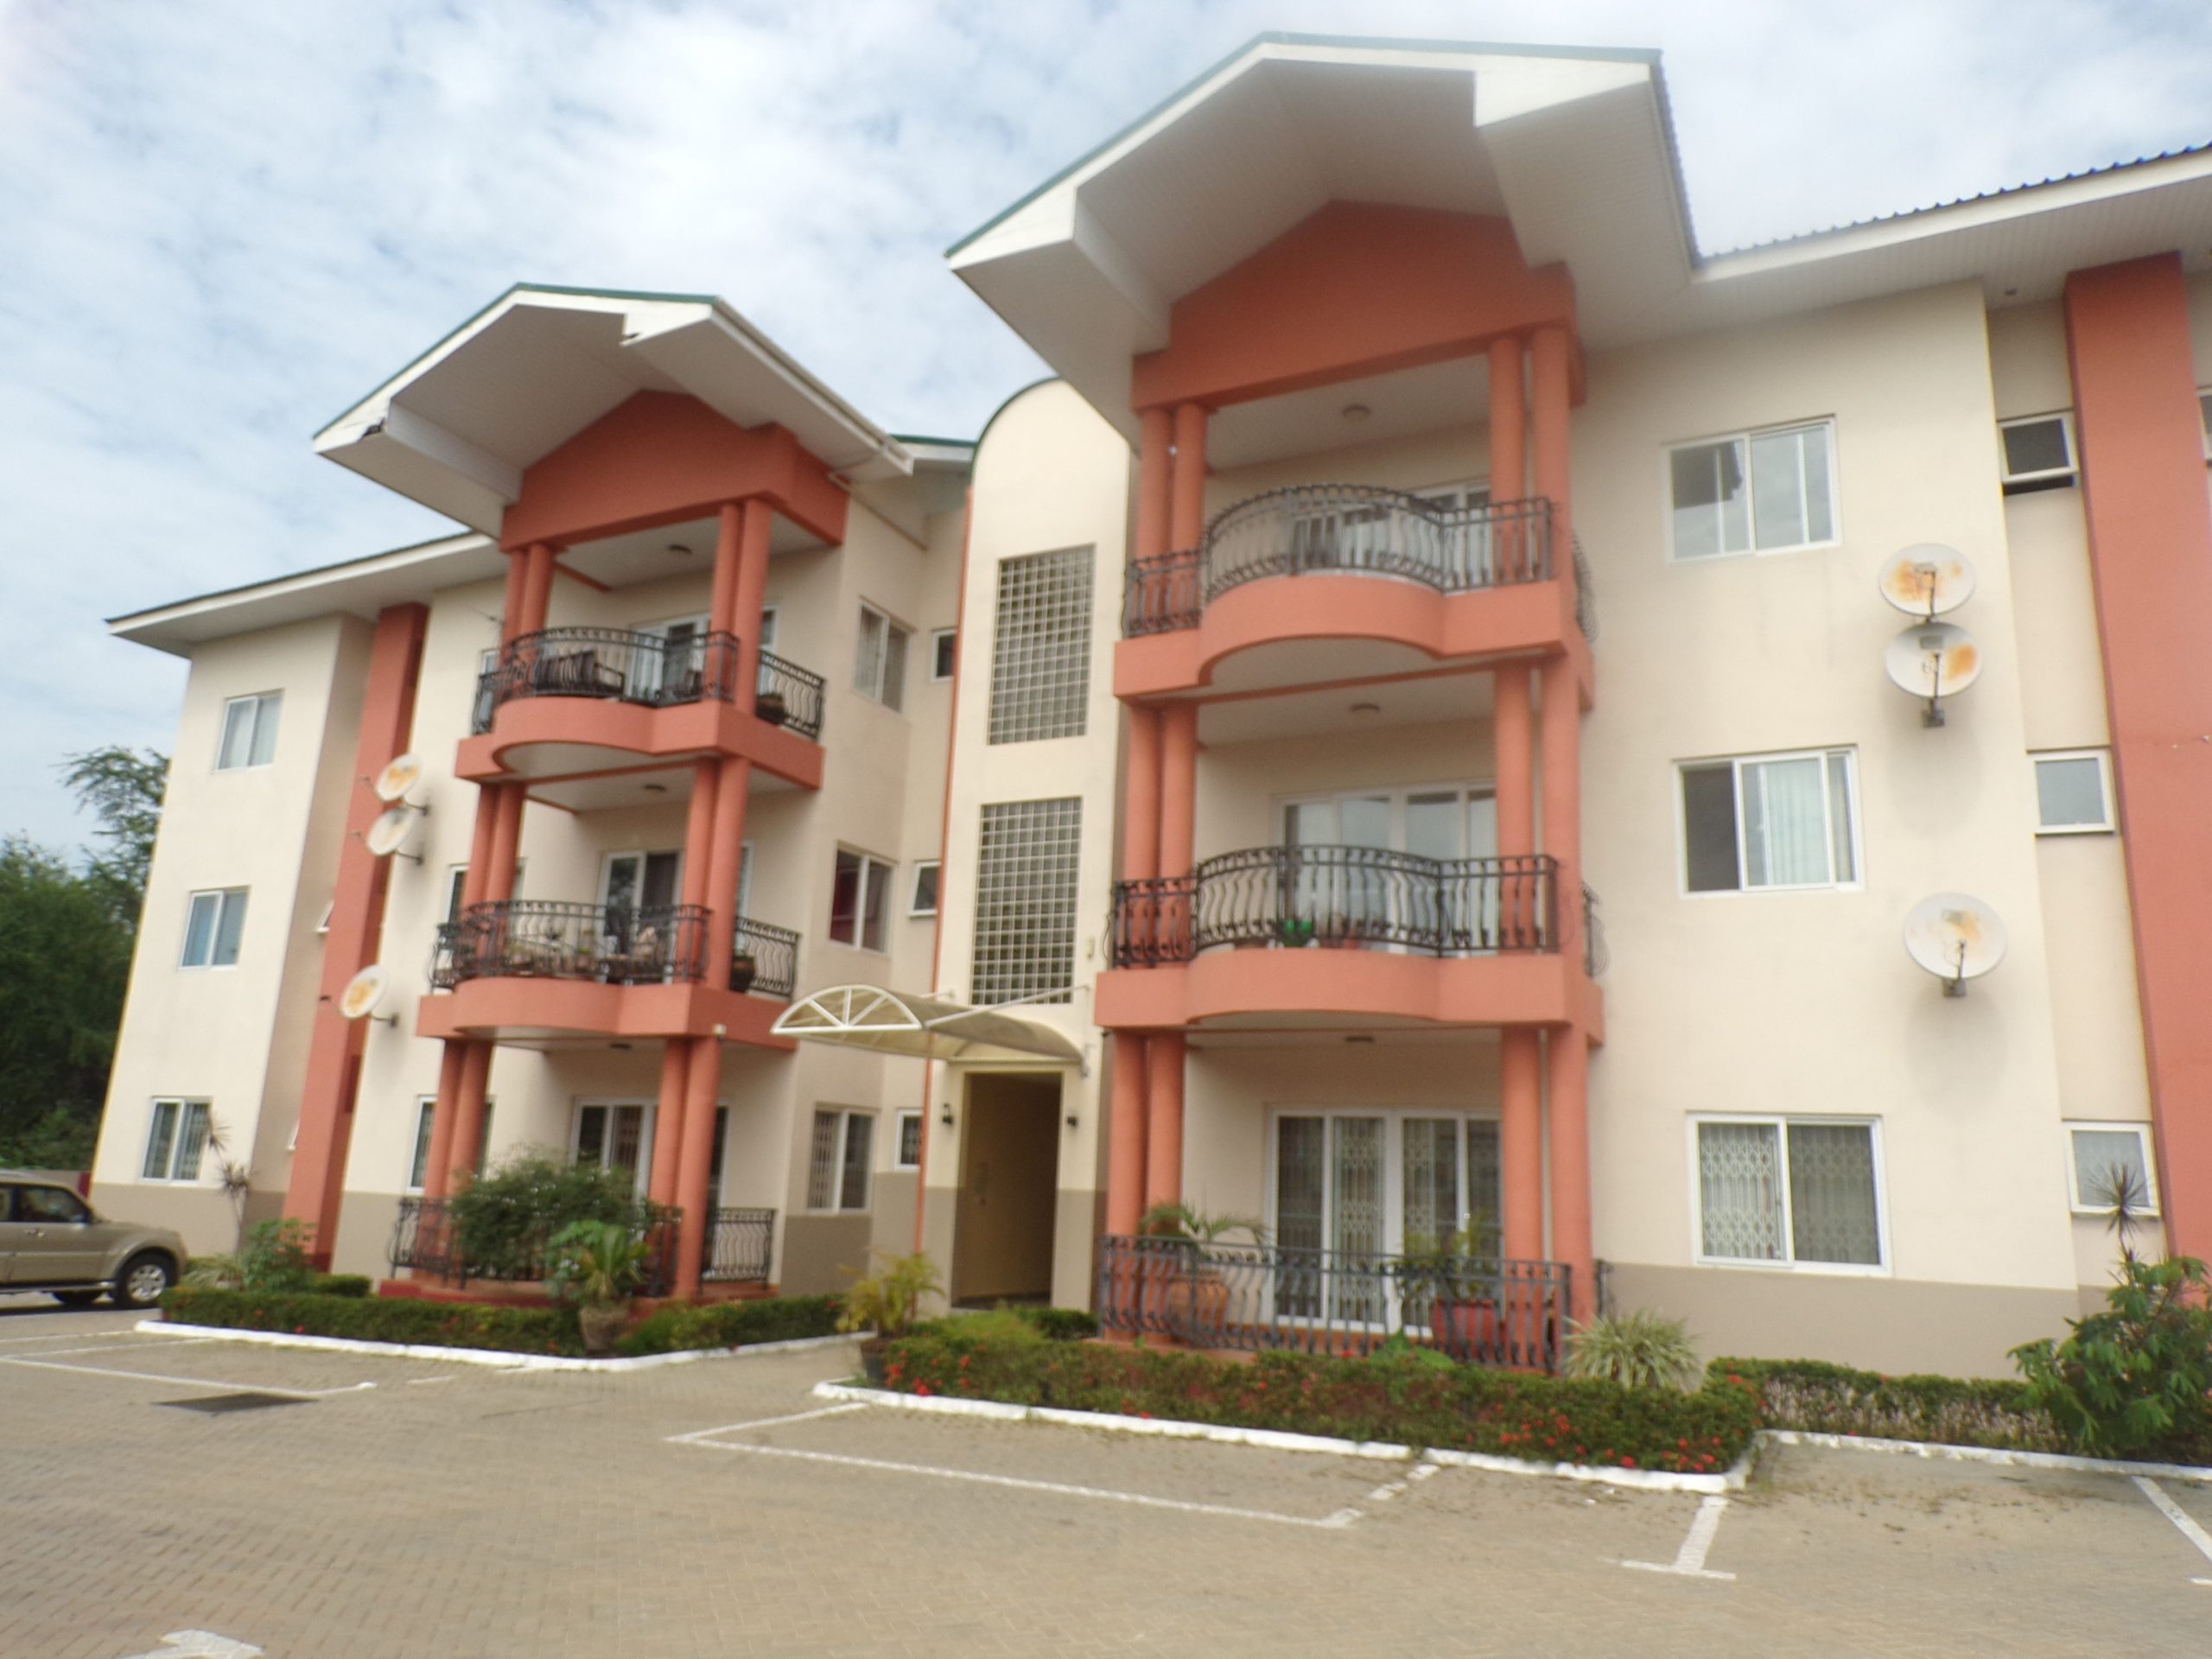 3 BEDROOM UNFURNISHED APARTMENT FOR RENT AT CANTONMENTS